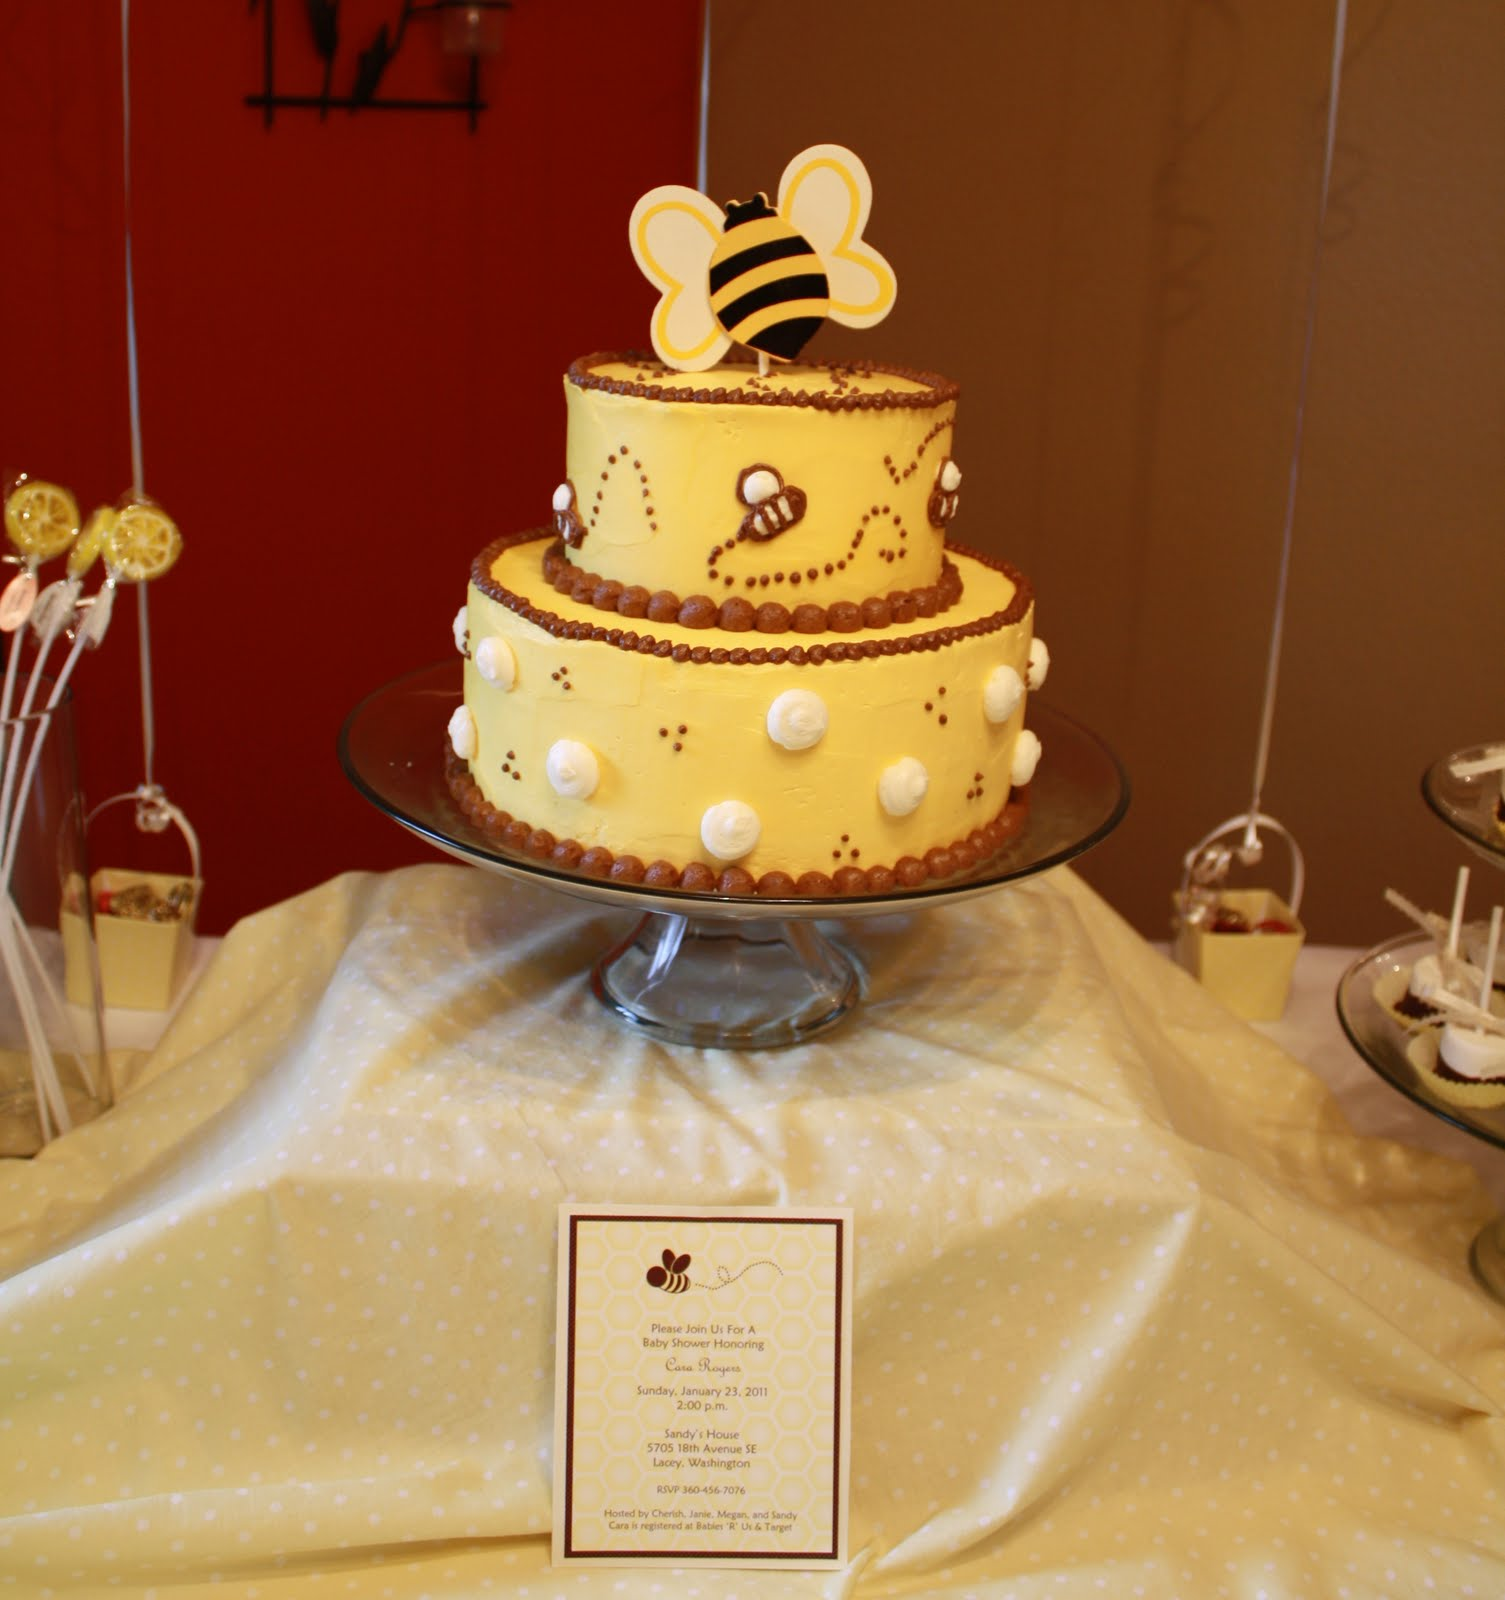 Pleasant Bumble Bee Cakes Decoration Ideas Little Birthday Cakes Personalised Birthday Cards Paralily Jamesorg